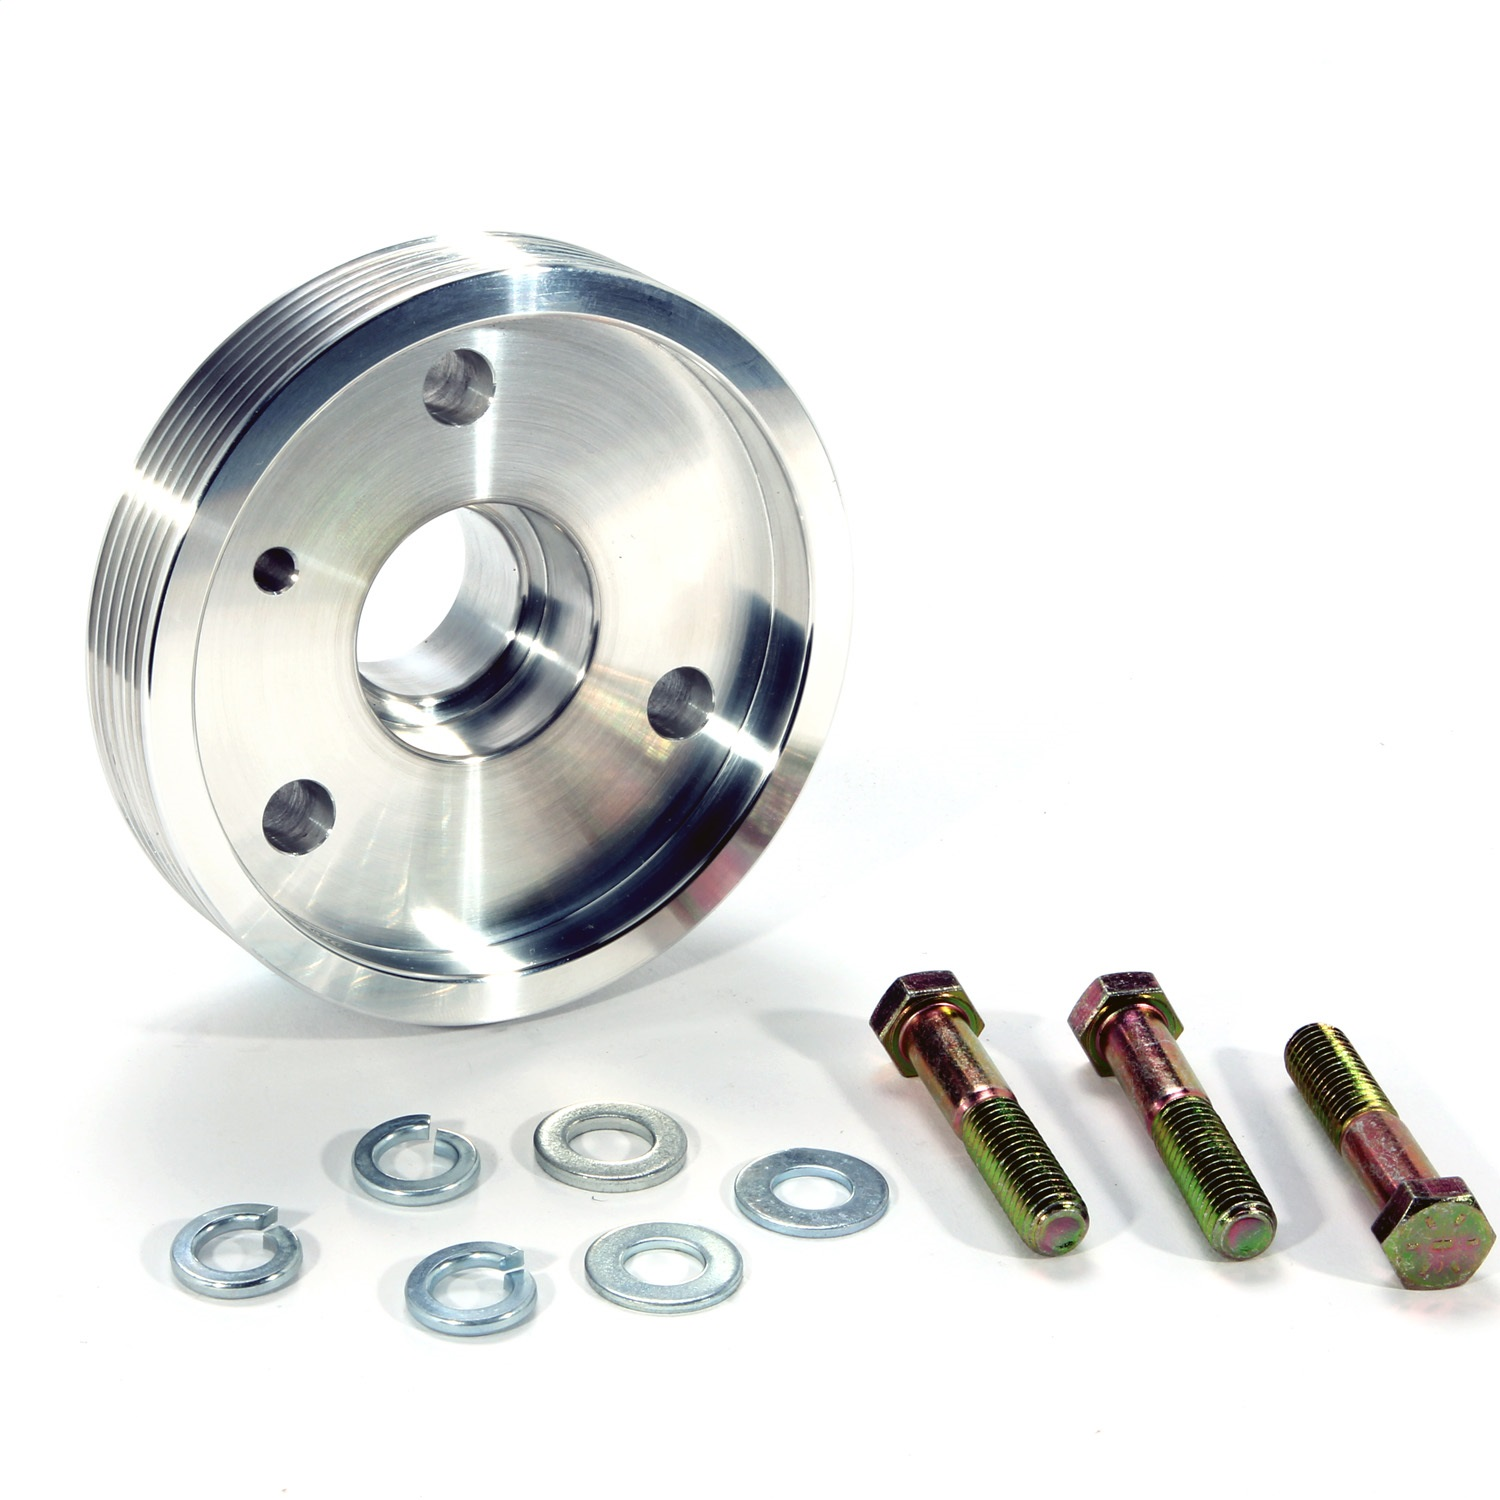 BBK Performance 1591 Power-Plus Series Underdrive Crank Pulley